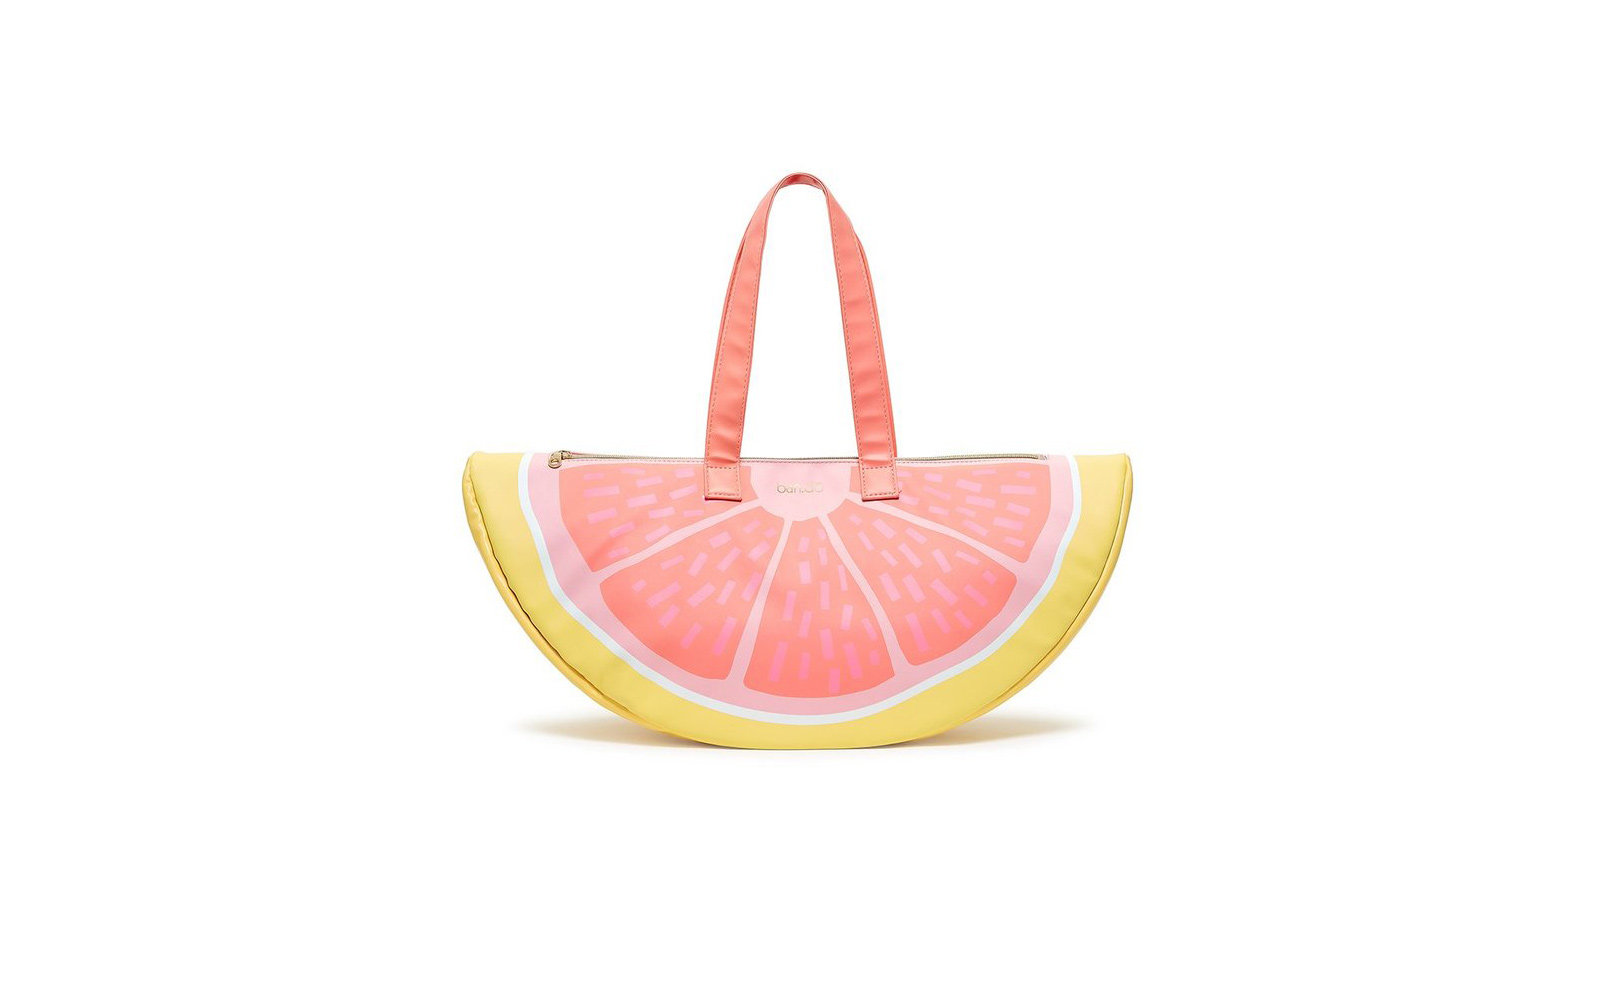 Ban.do Grapefruit Insulated Cooler Bag